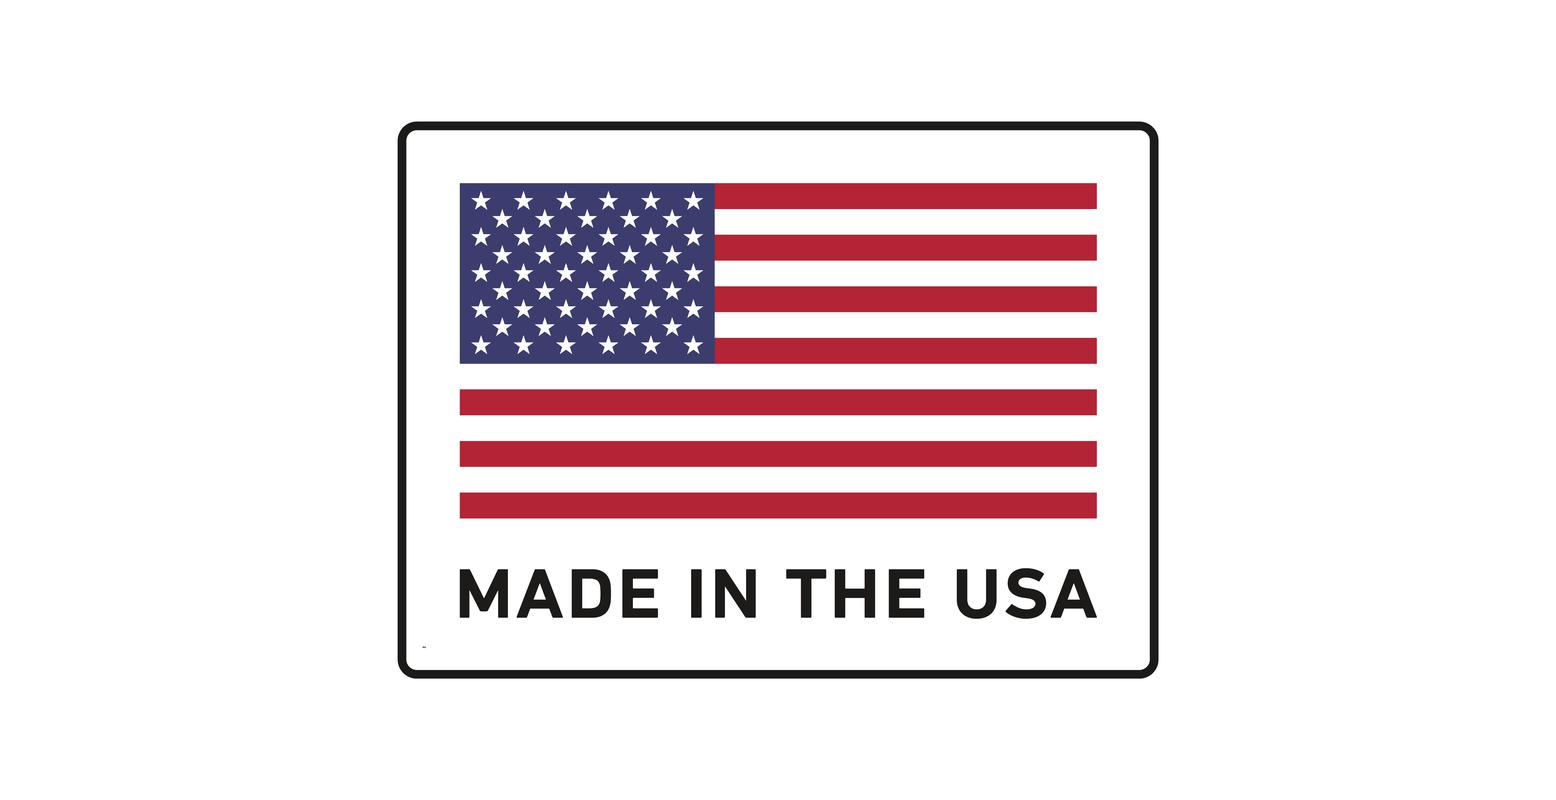 custom-fit-apparel-made-in-the-usa